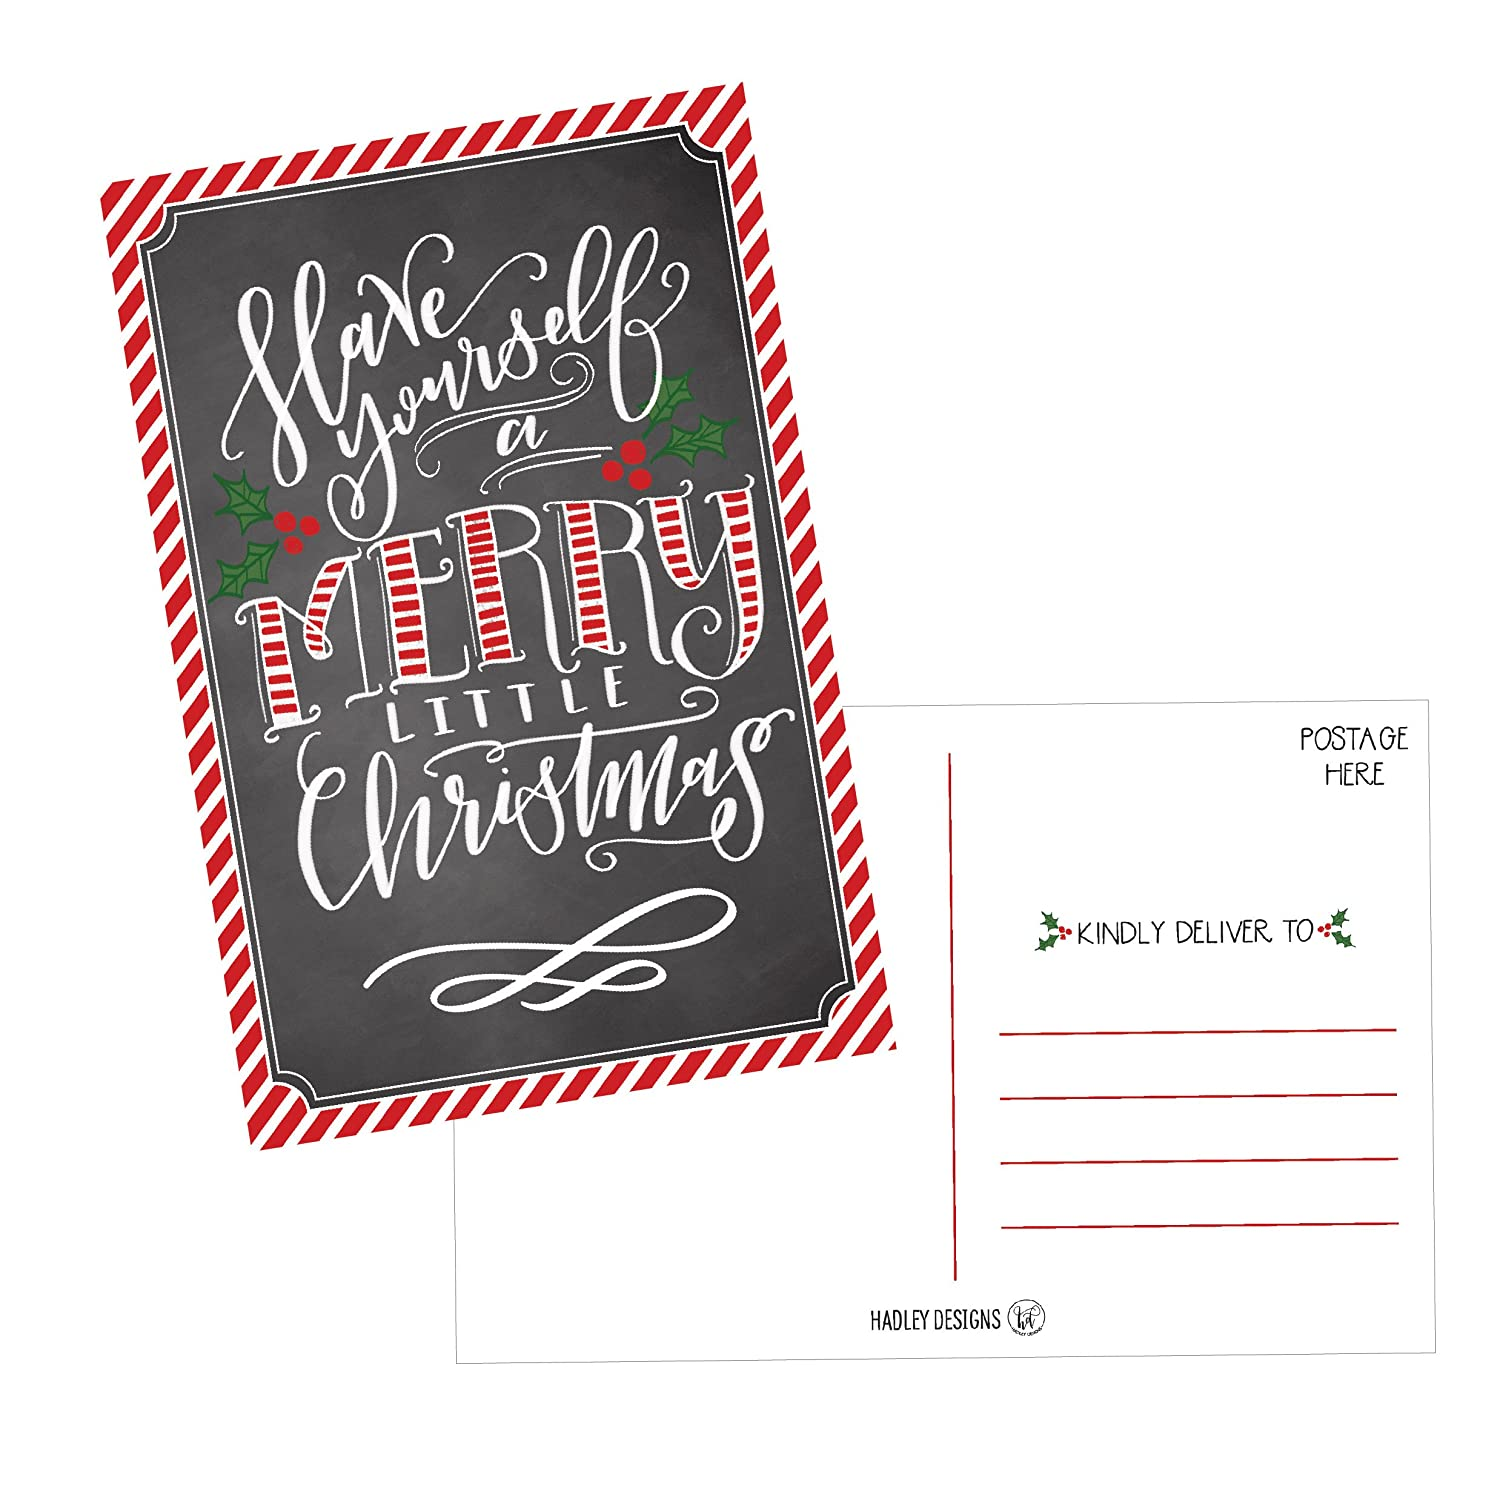 50 Holiday Greeting Cards Cute & Fancy Blank Winter Christmas Postcard Set Bulk Pack of Premium Seasons Greetings Note Happy New Years Cards for Kids Business Office or Church Thank You Notes